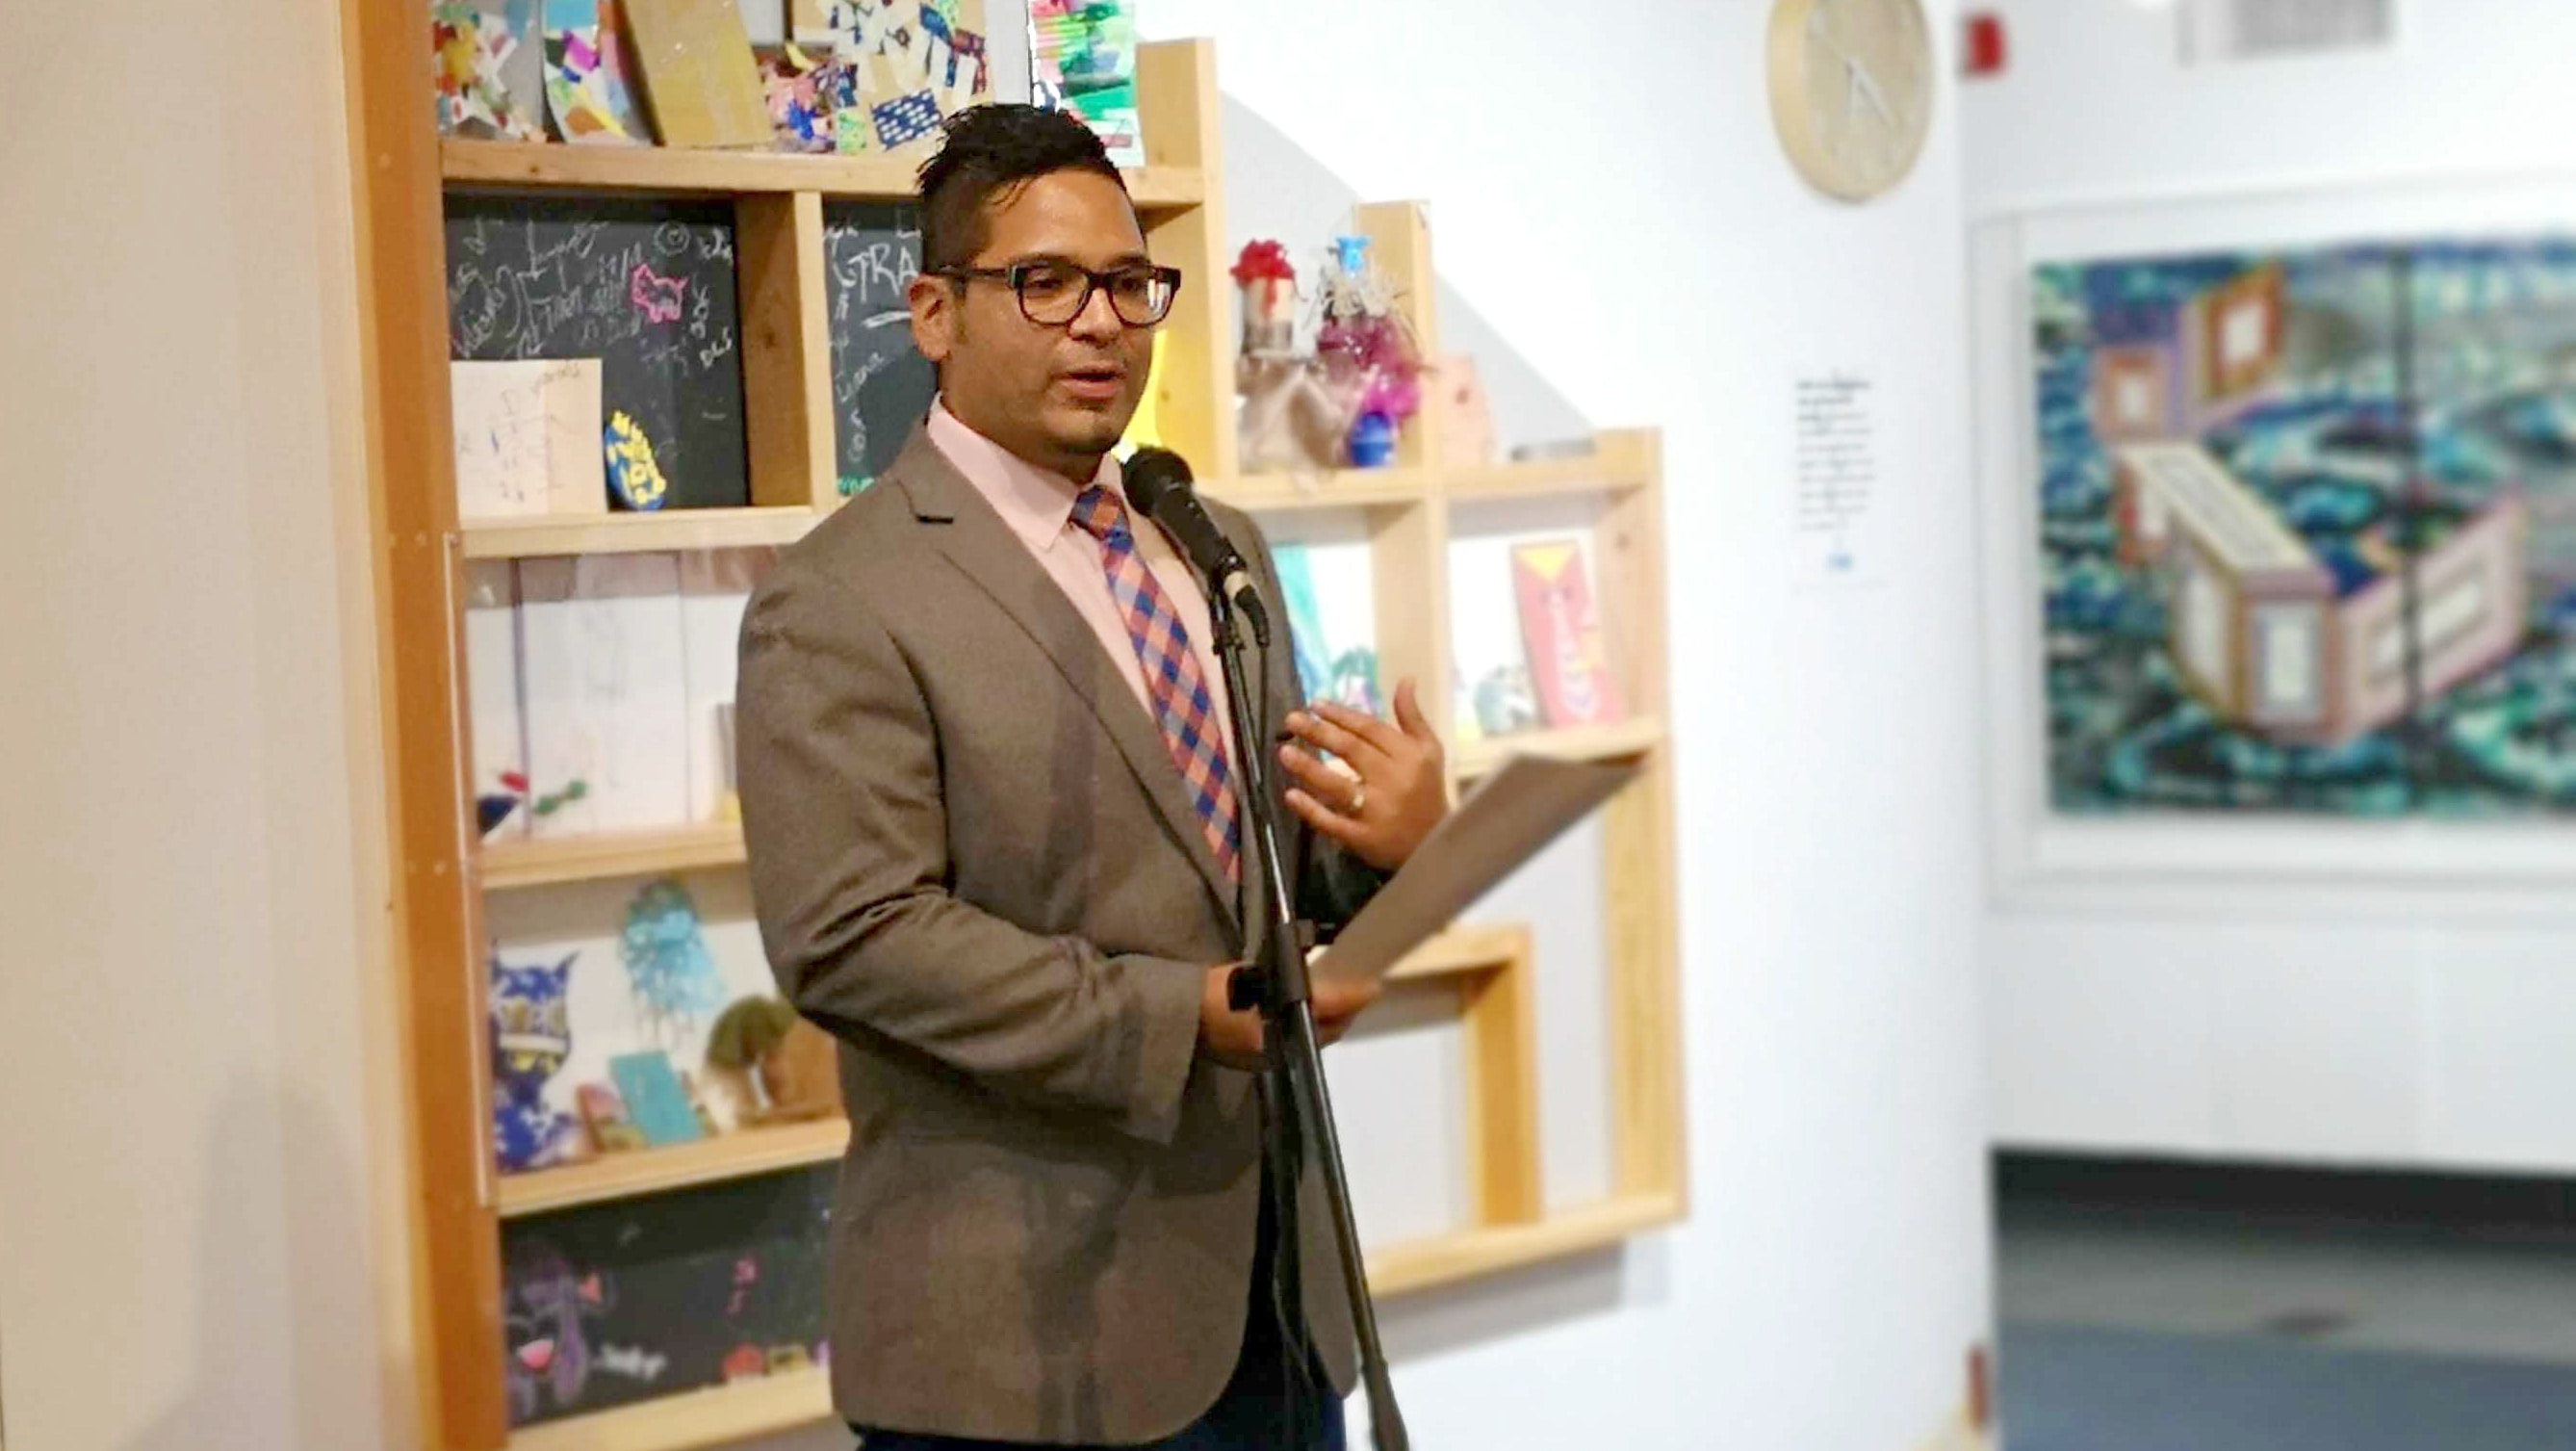 David Rios speaking at a microphone inside of a children's museum space.